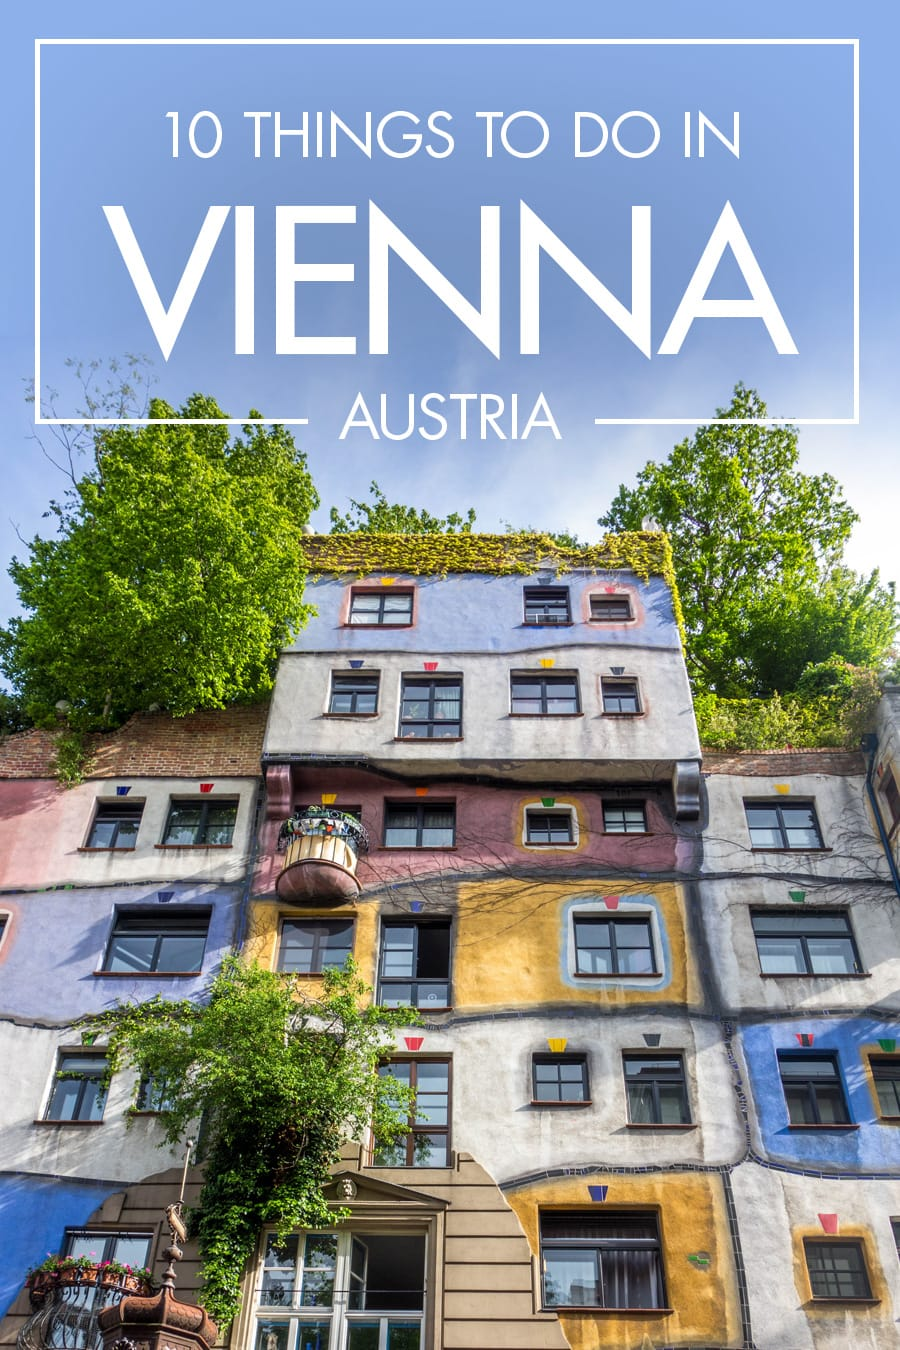 Best Things to Do in Vienna, Austria